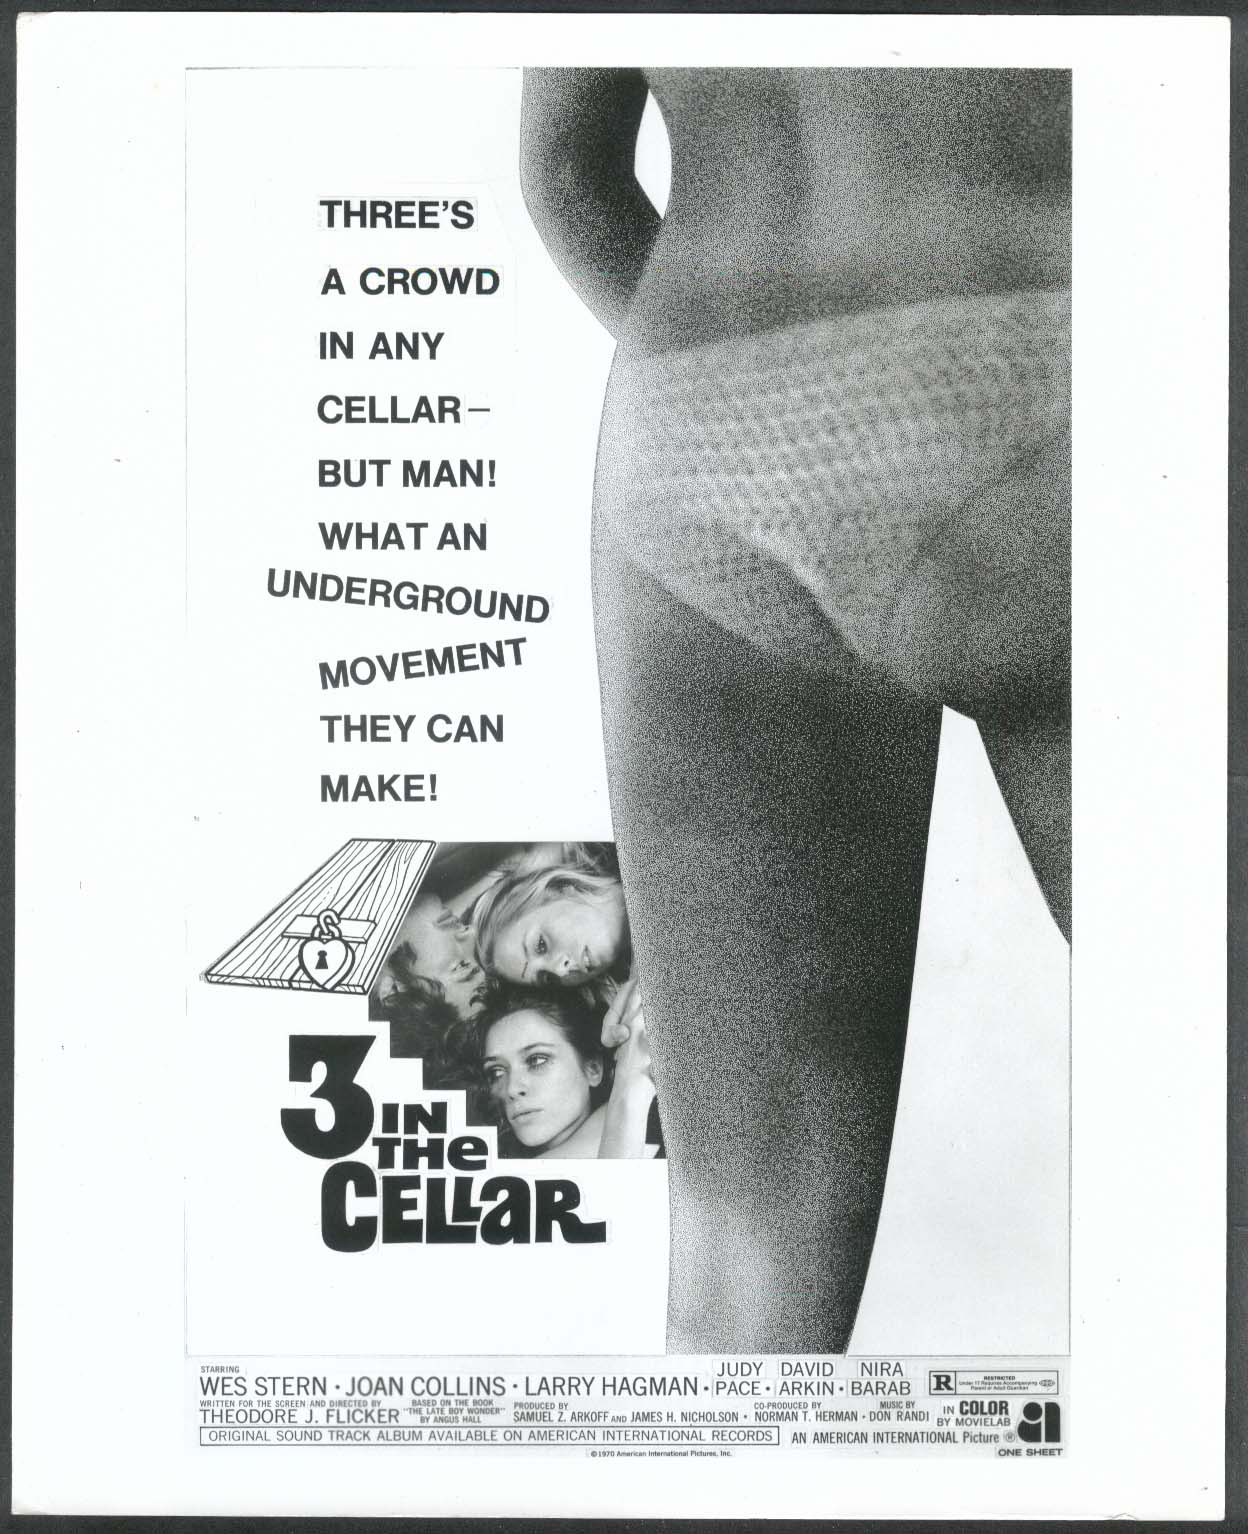 3 in the Cellar poster art 8x10 photograph 1970